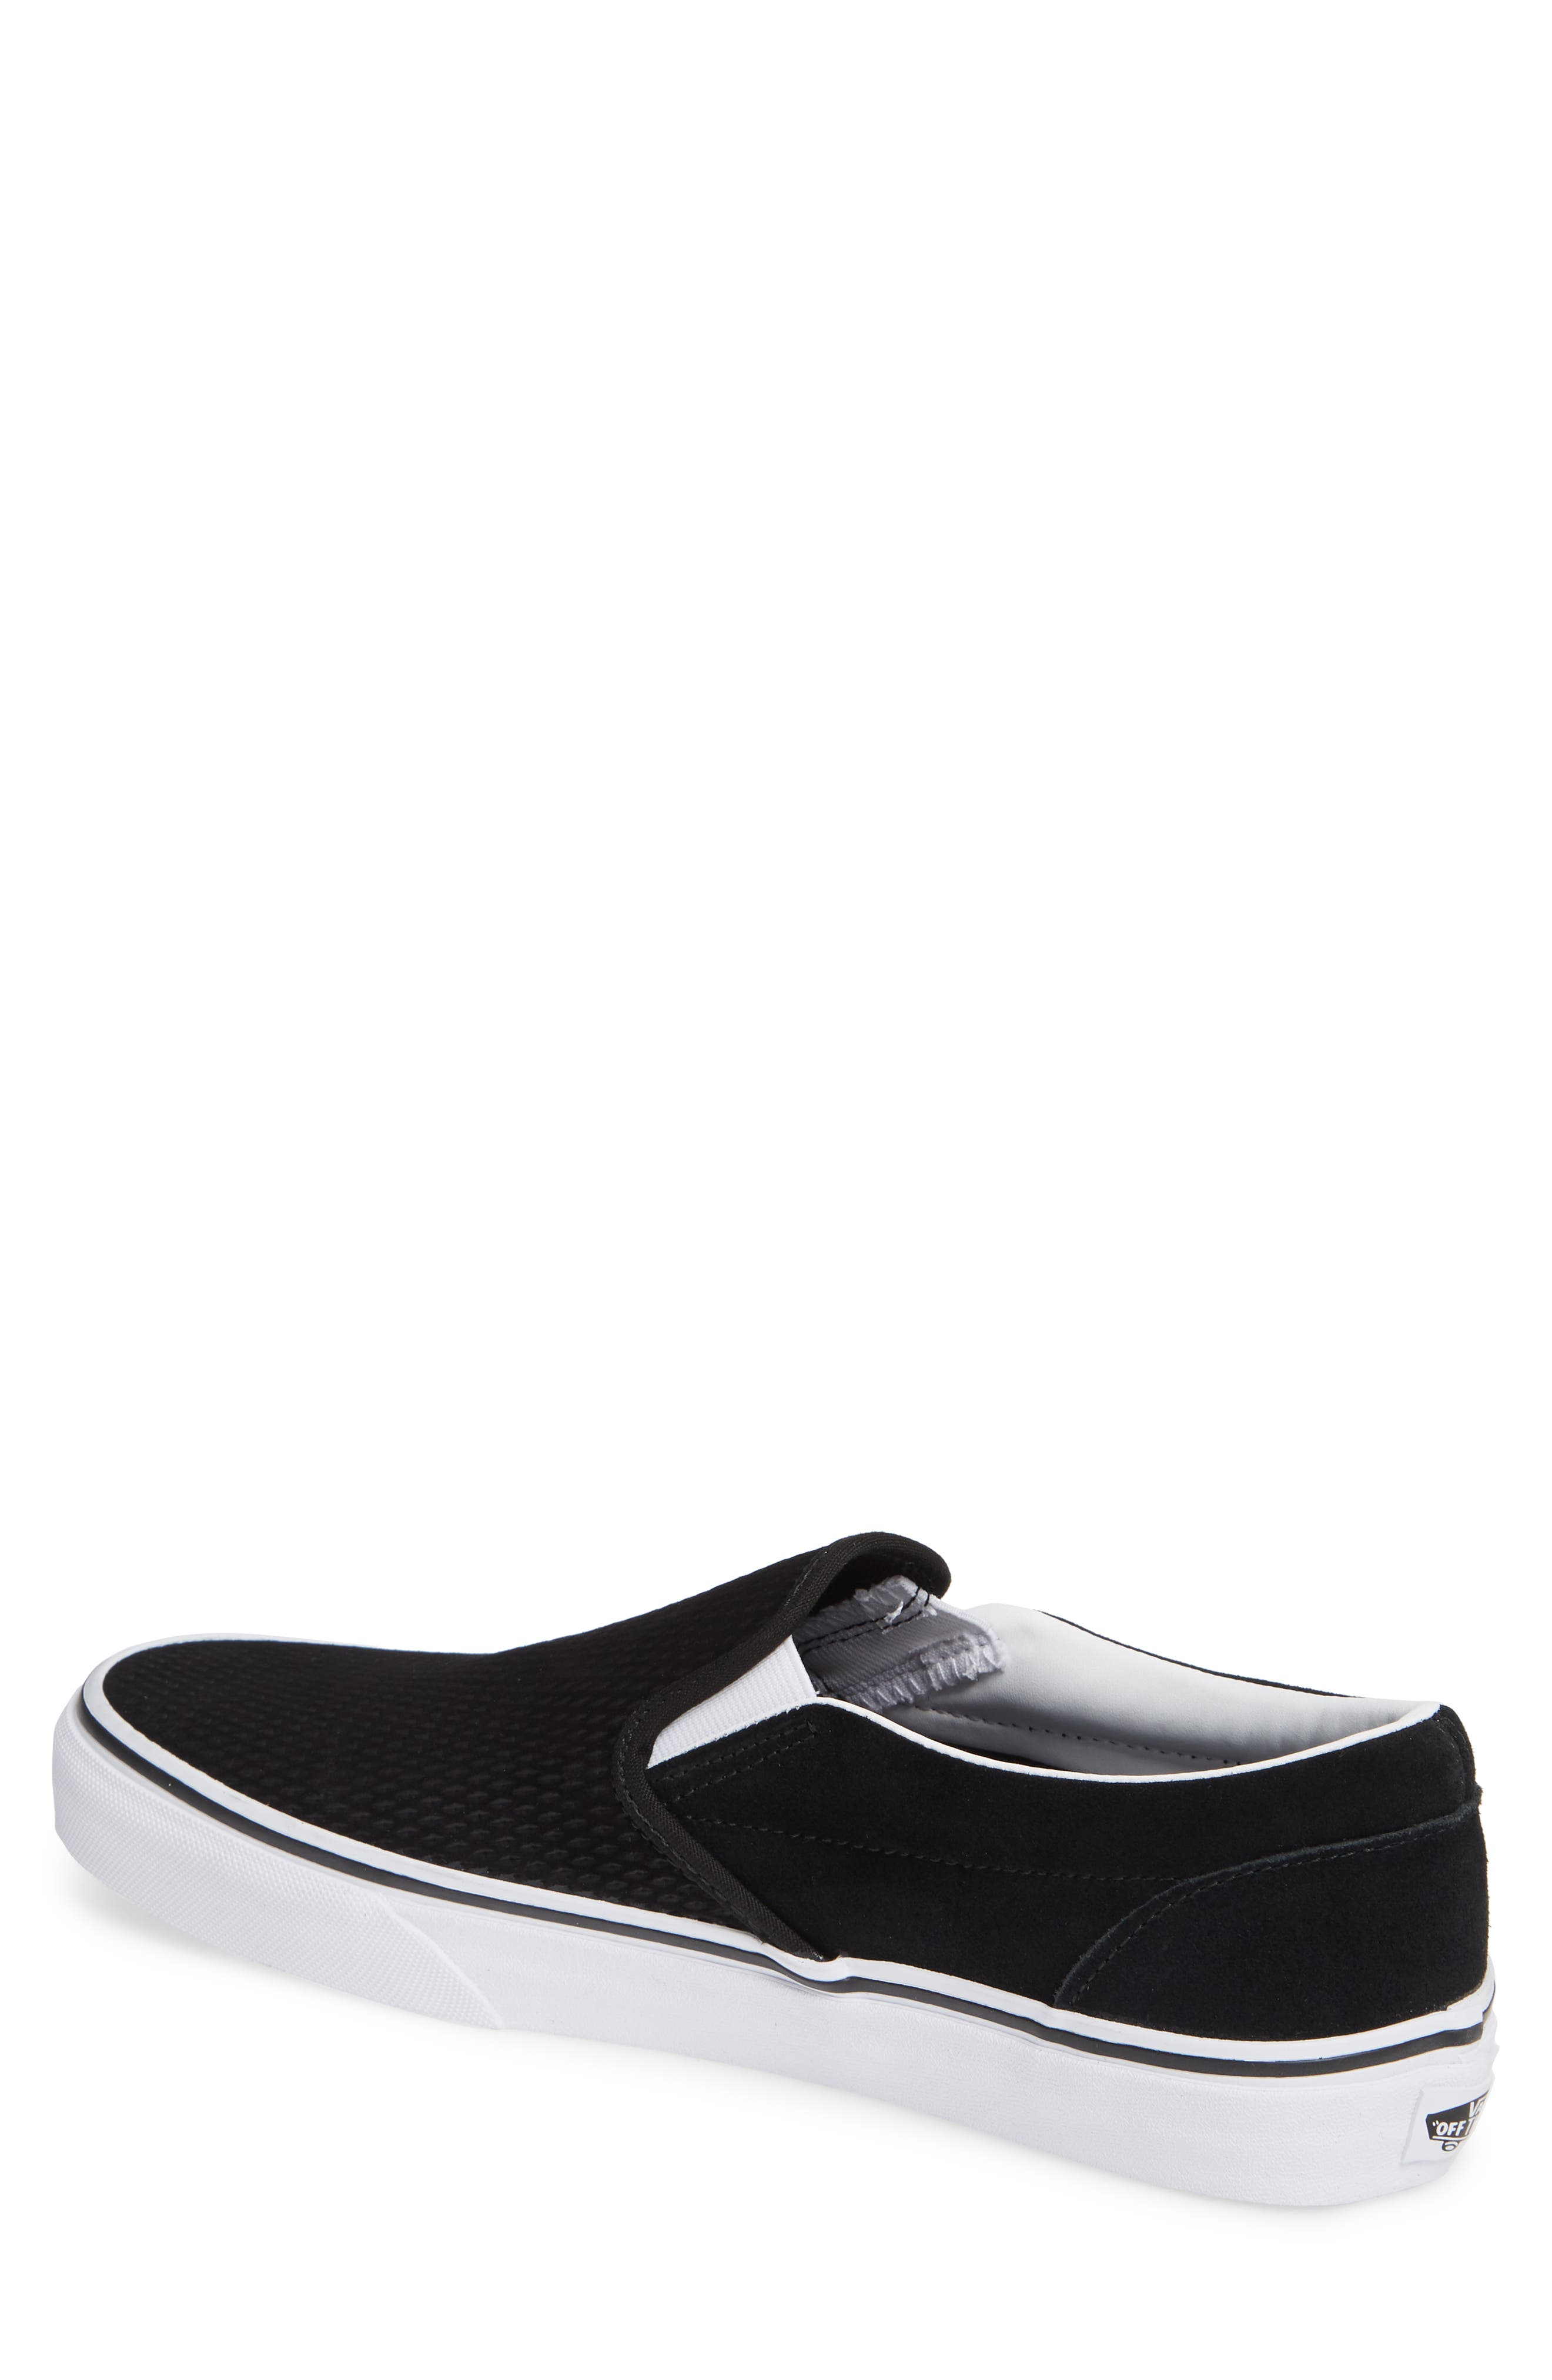 Classic Embossed Suede Slip-On,                             Alternate thumbnail 2, color,                             BLACK/ TRUE WHITE SUEDE